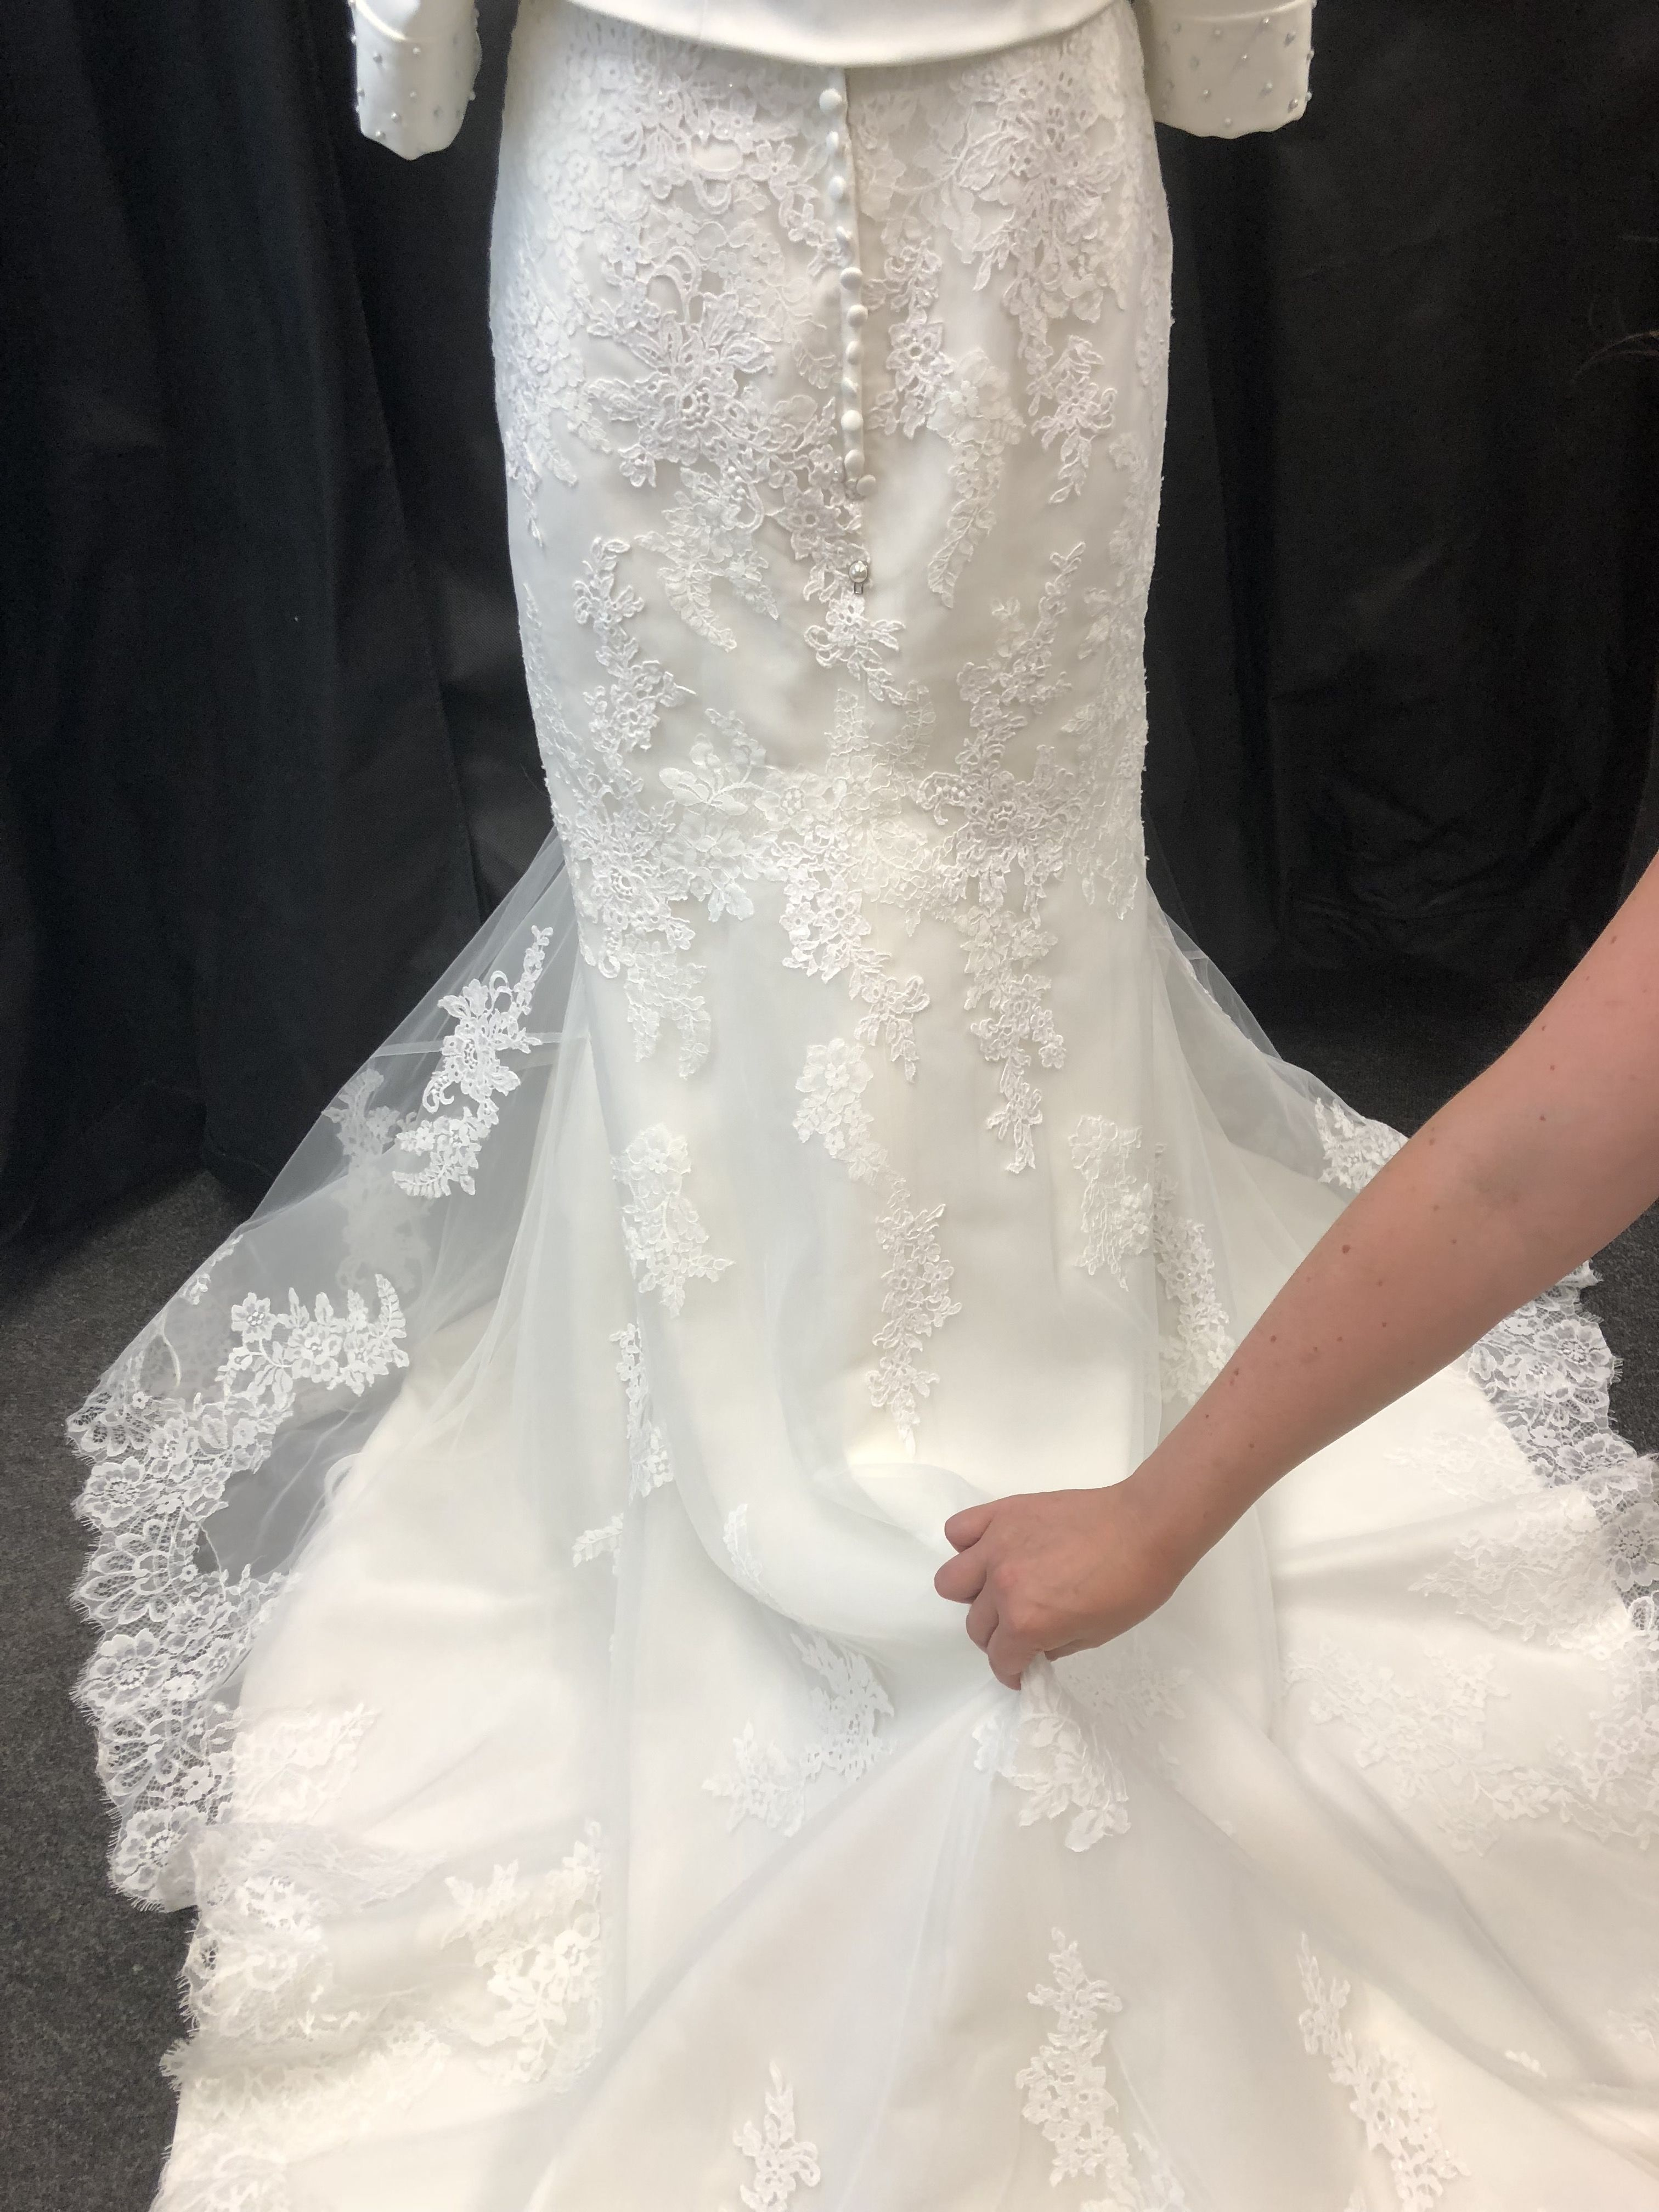 Have You Thought How To Bustle Or Hook Up Your Wedding Dress Train